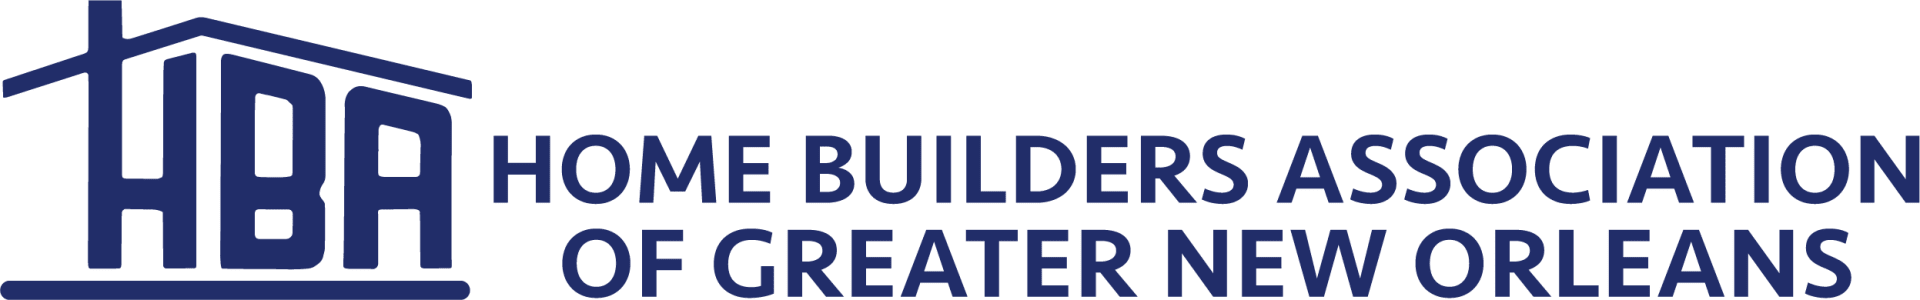 Home Builders Association of Greater New Orleans Logo